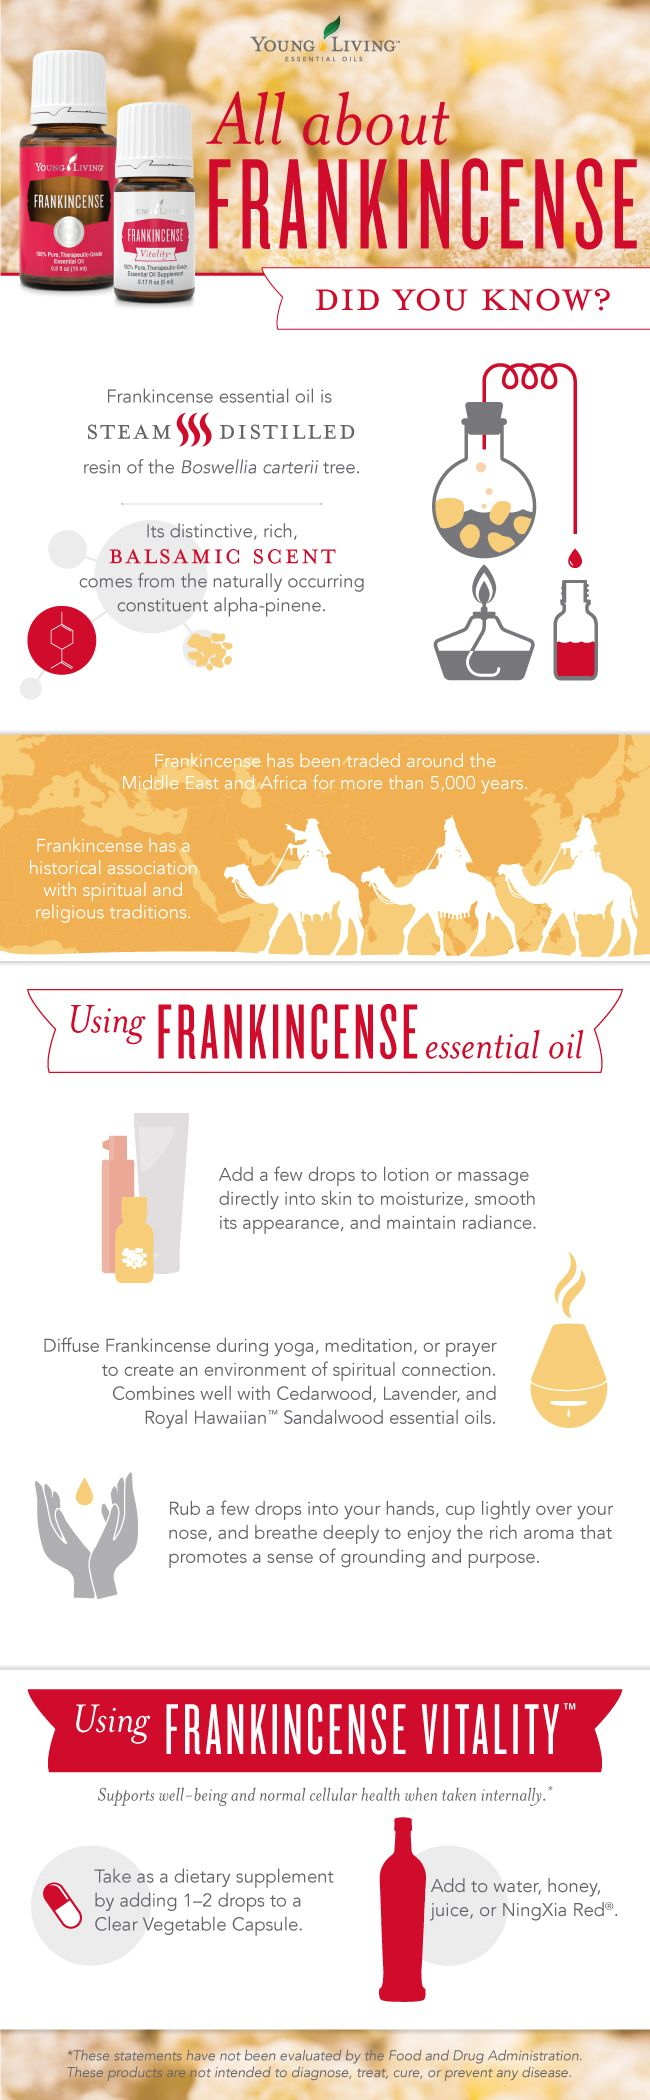 Blog-Frankincense_Infographic_US_0816_sk                                                                                                                                                                                 More